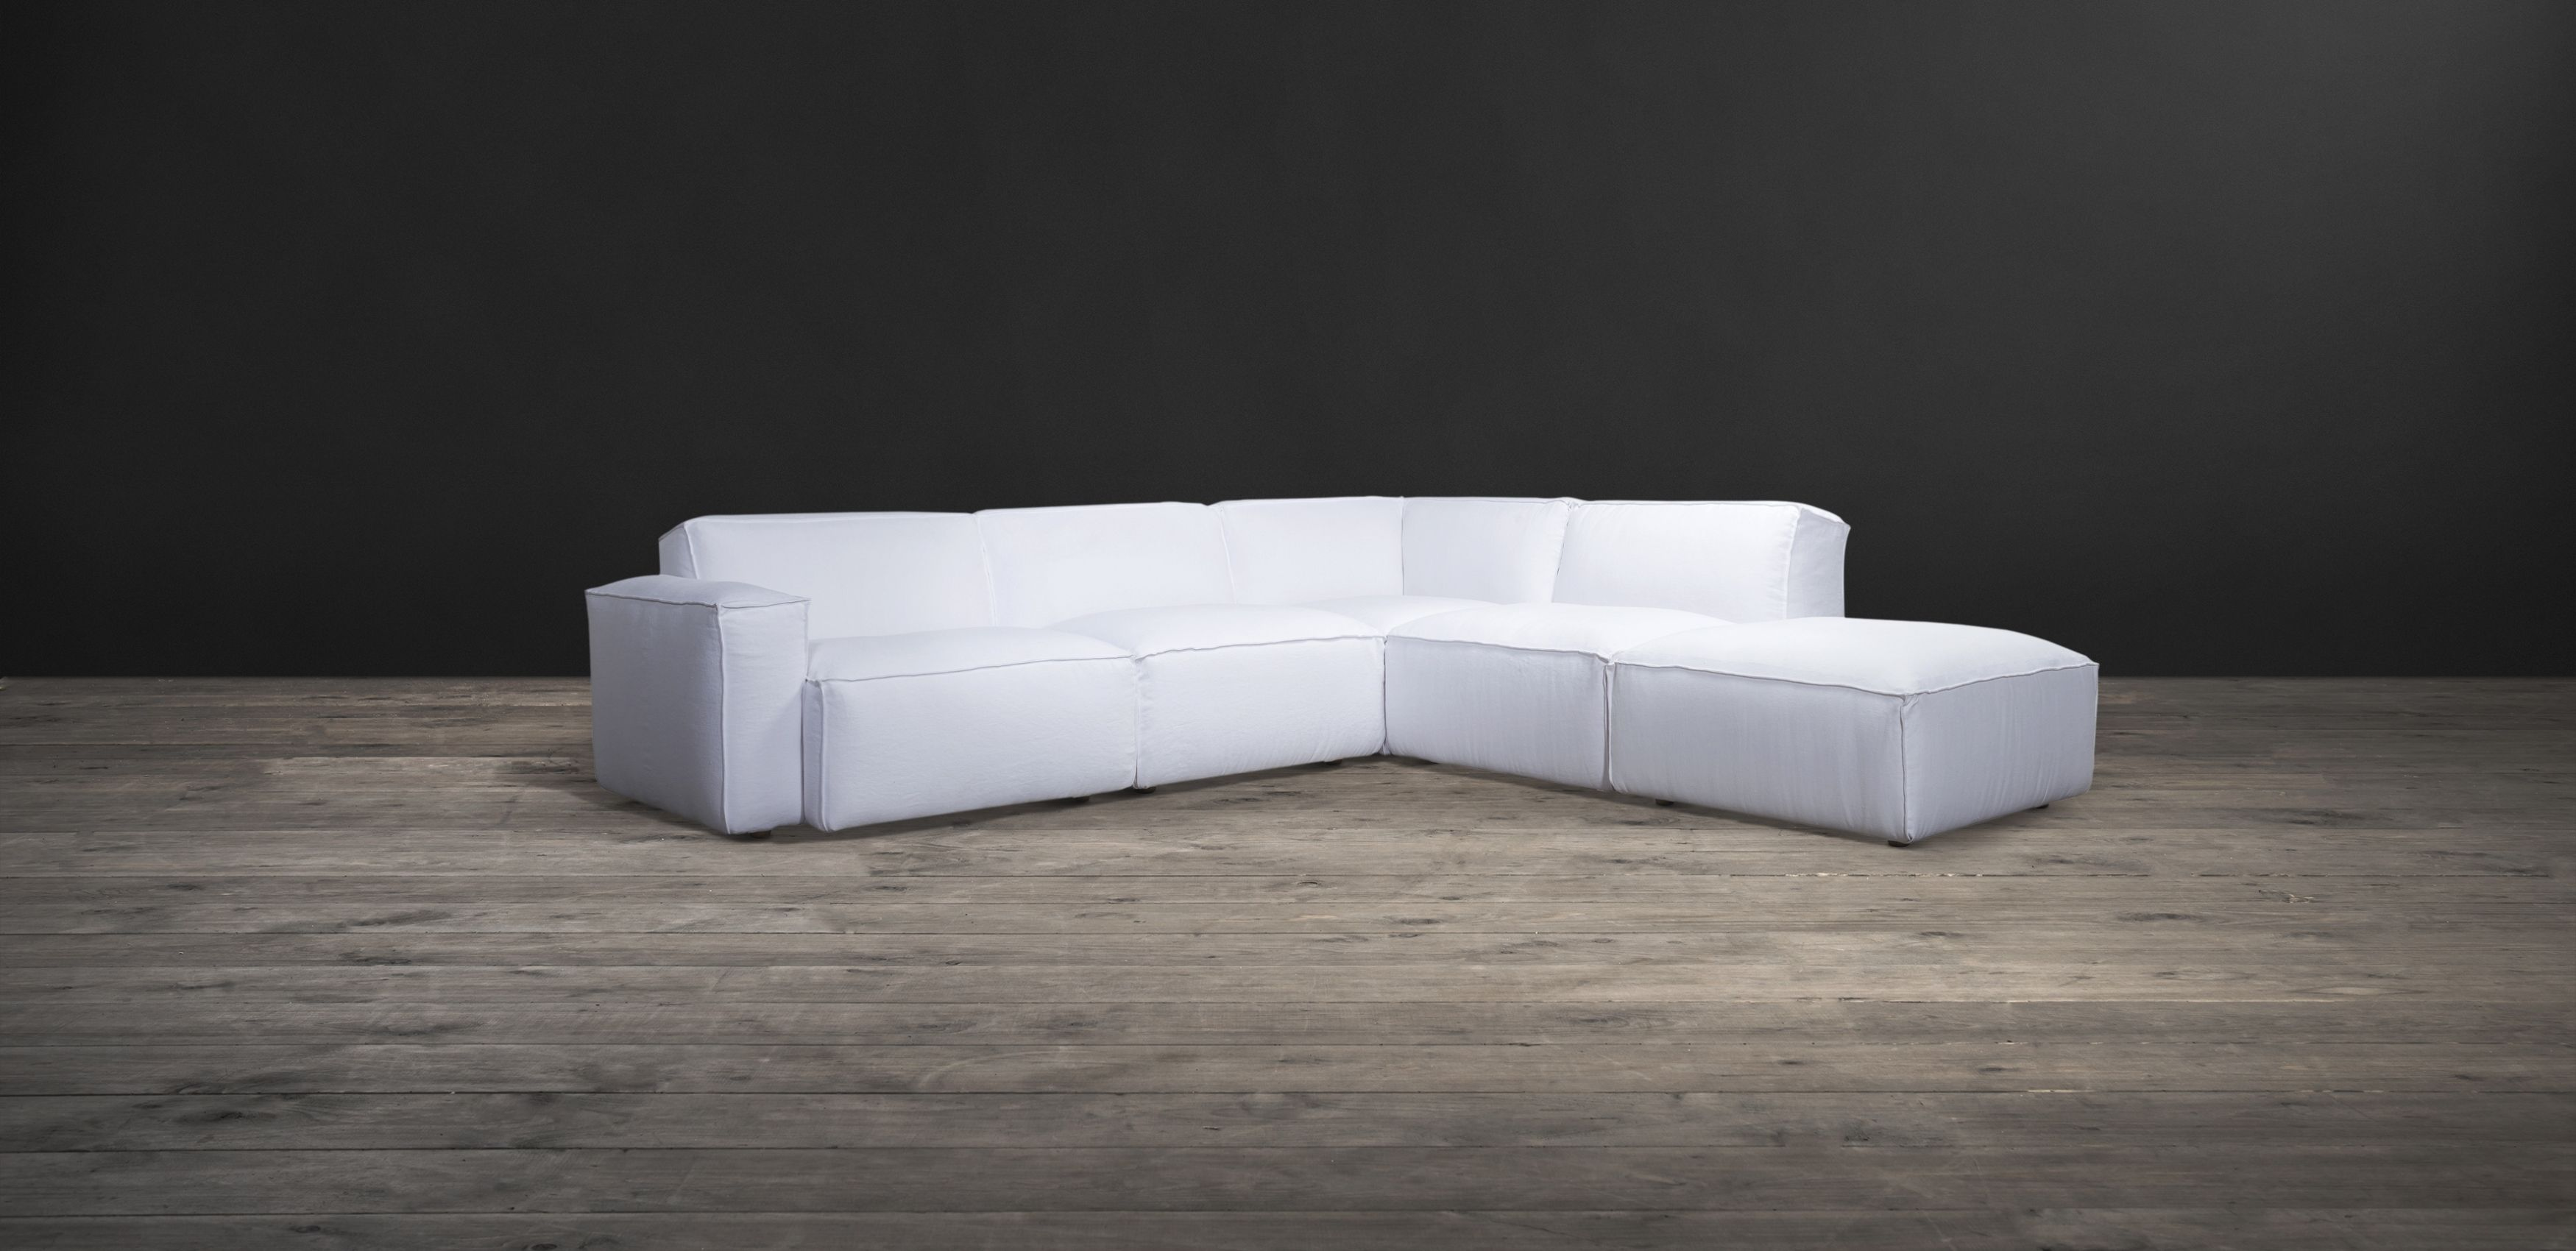 Nirvana Medium Sectional Sofa White Sectional Sofa Sectional Sofa Fabric Sectional Sofas